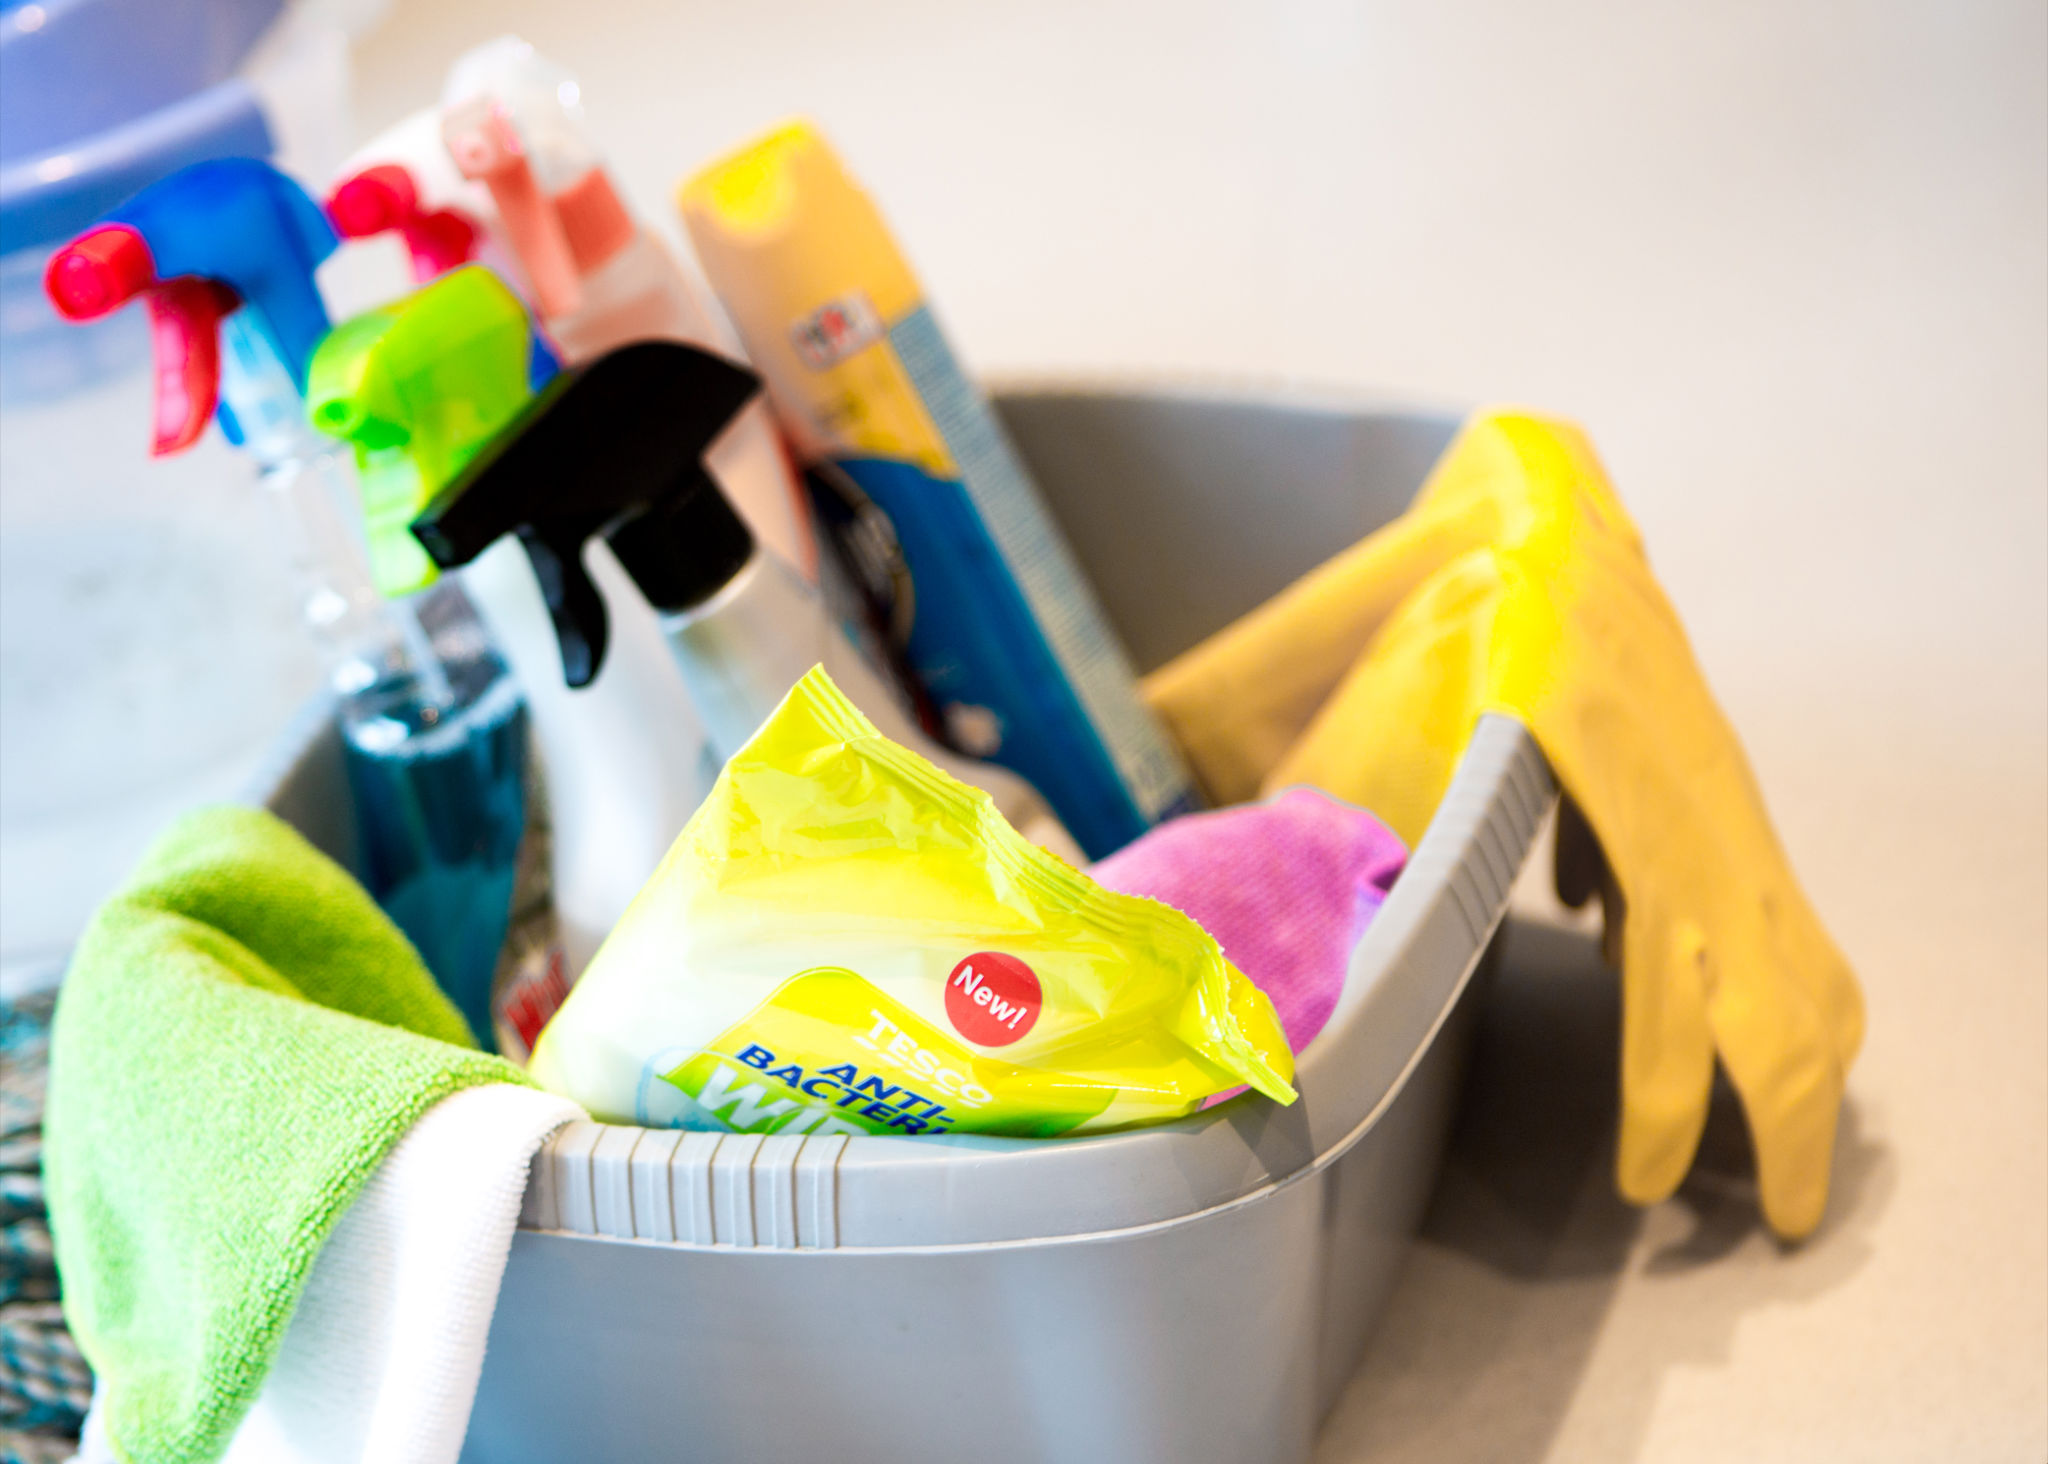 Benefits of selecting Office Cleaners